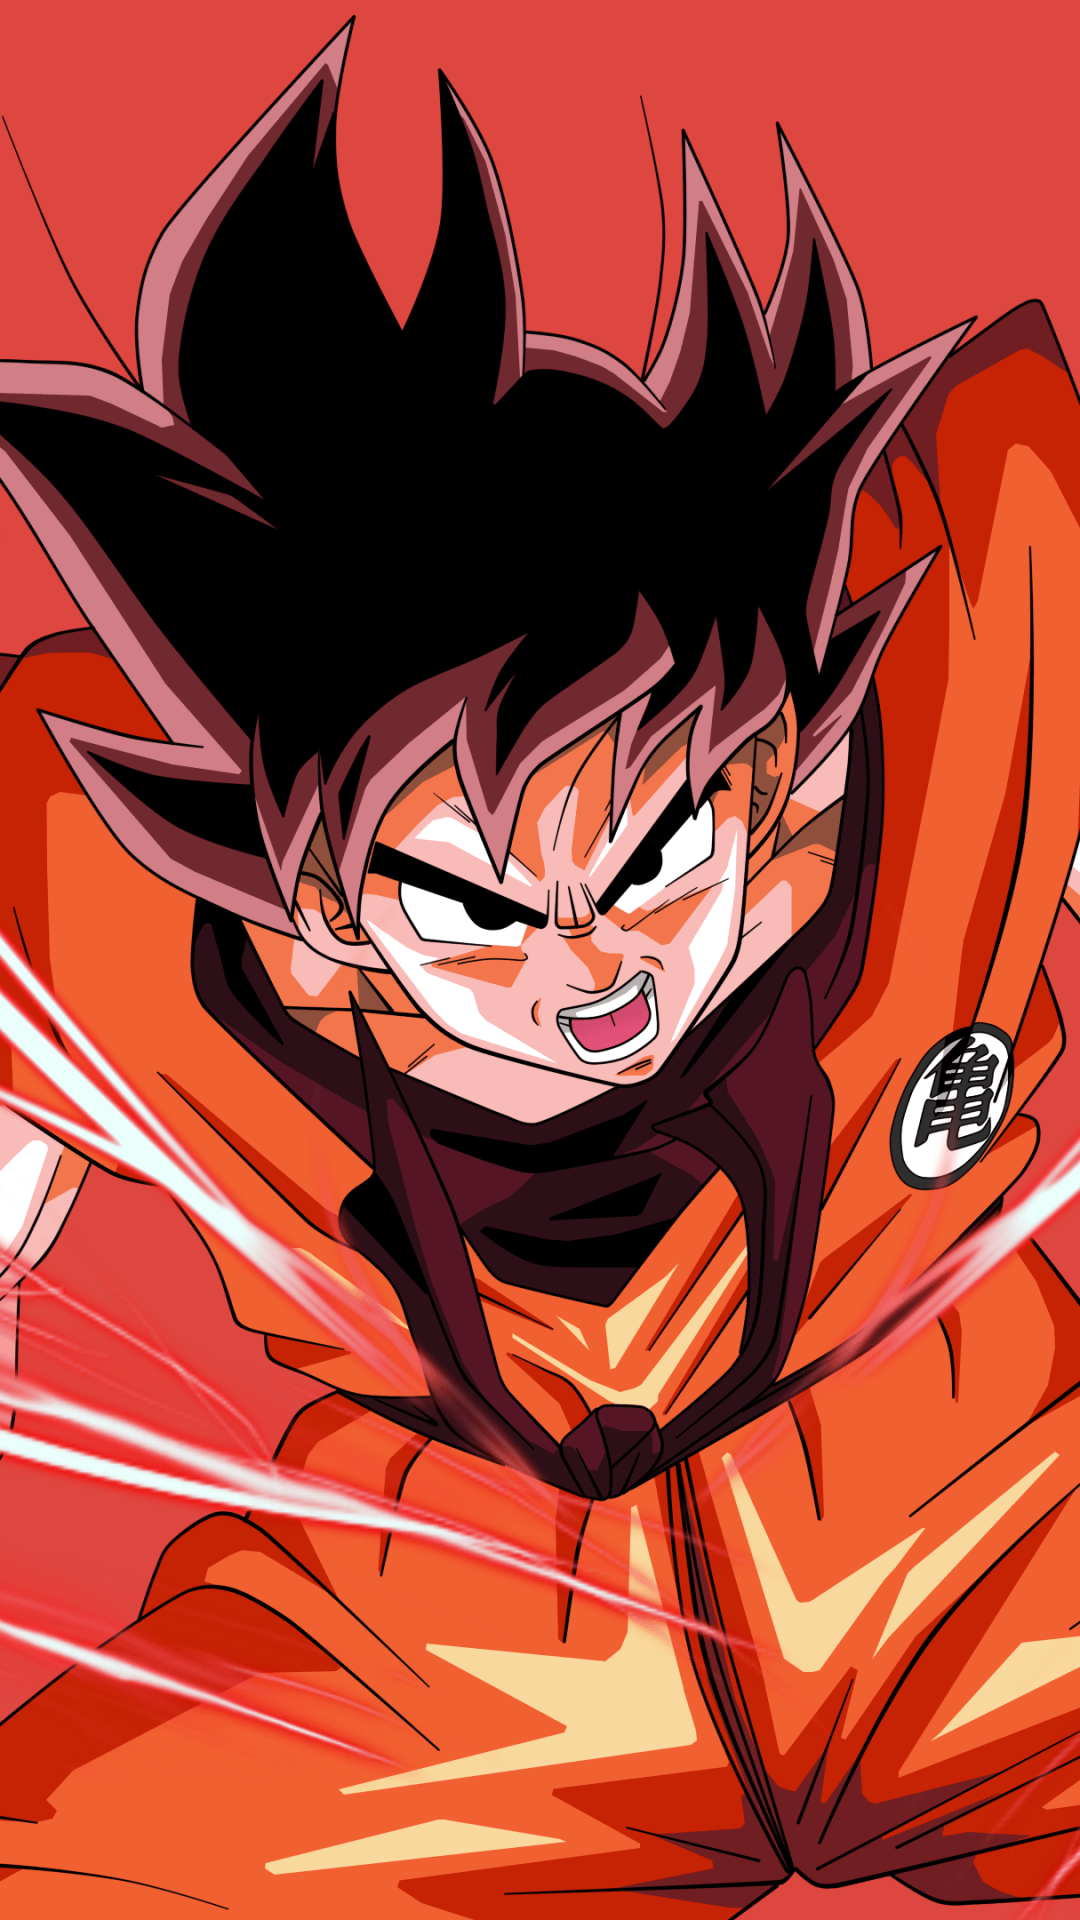 High Quality Anime Wallpaper Iphone Xr Dragon Ball Z